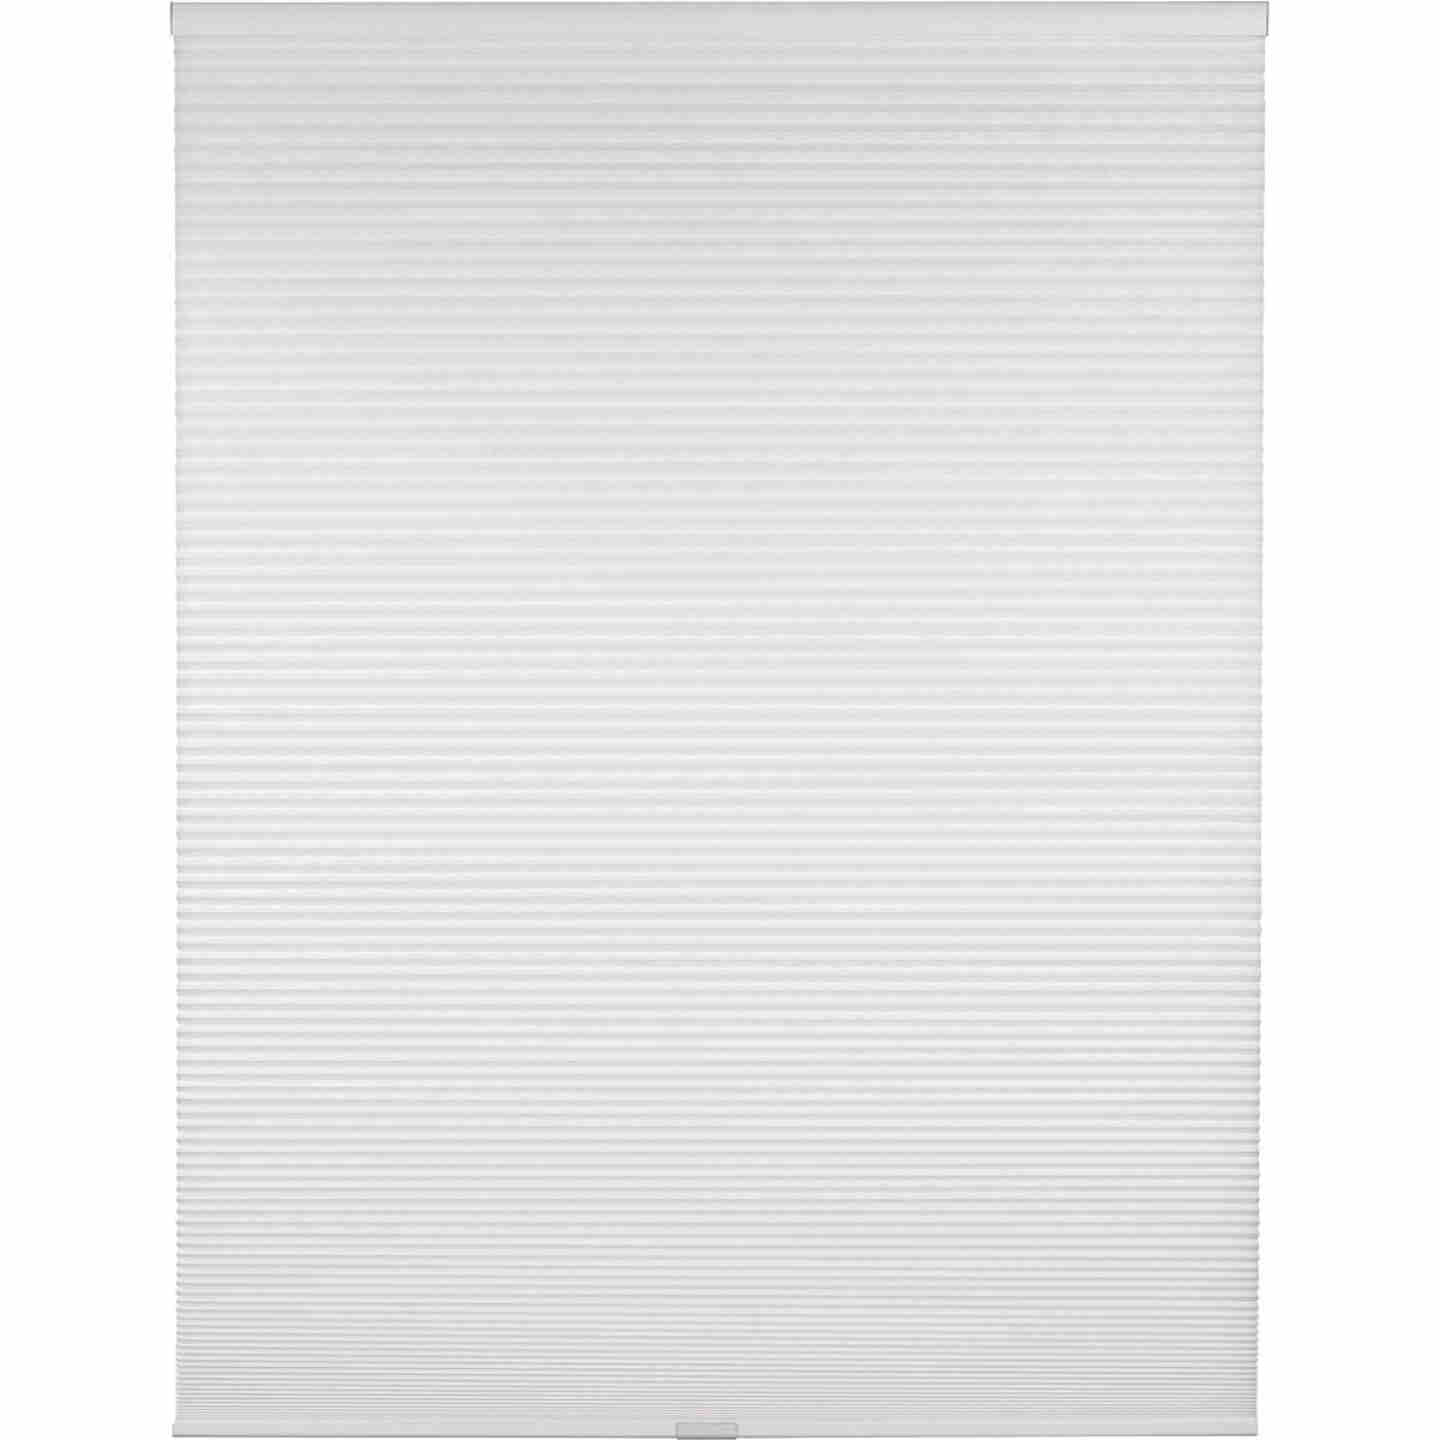 Home Impressions 1 In. Light Filtering Cellular White 29 In. x 72 In. Cordless Shade Image 1